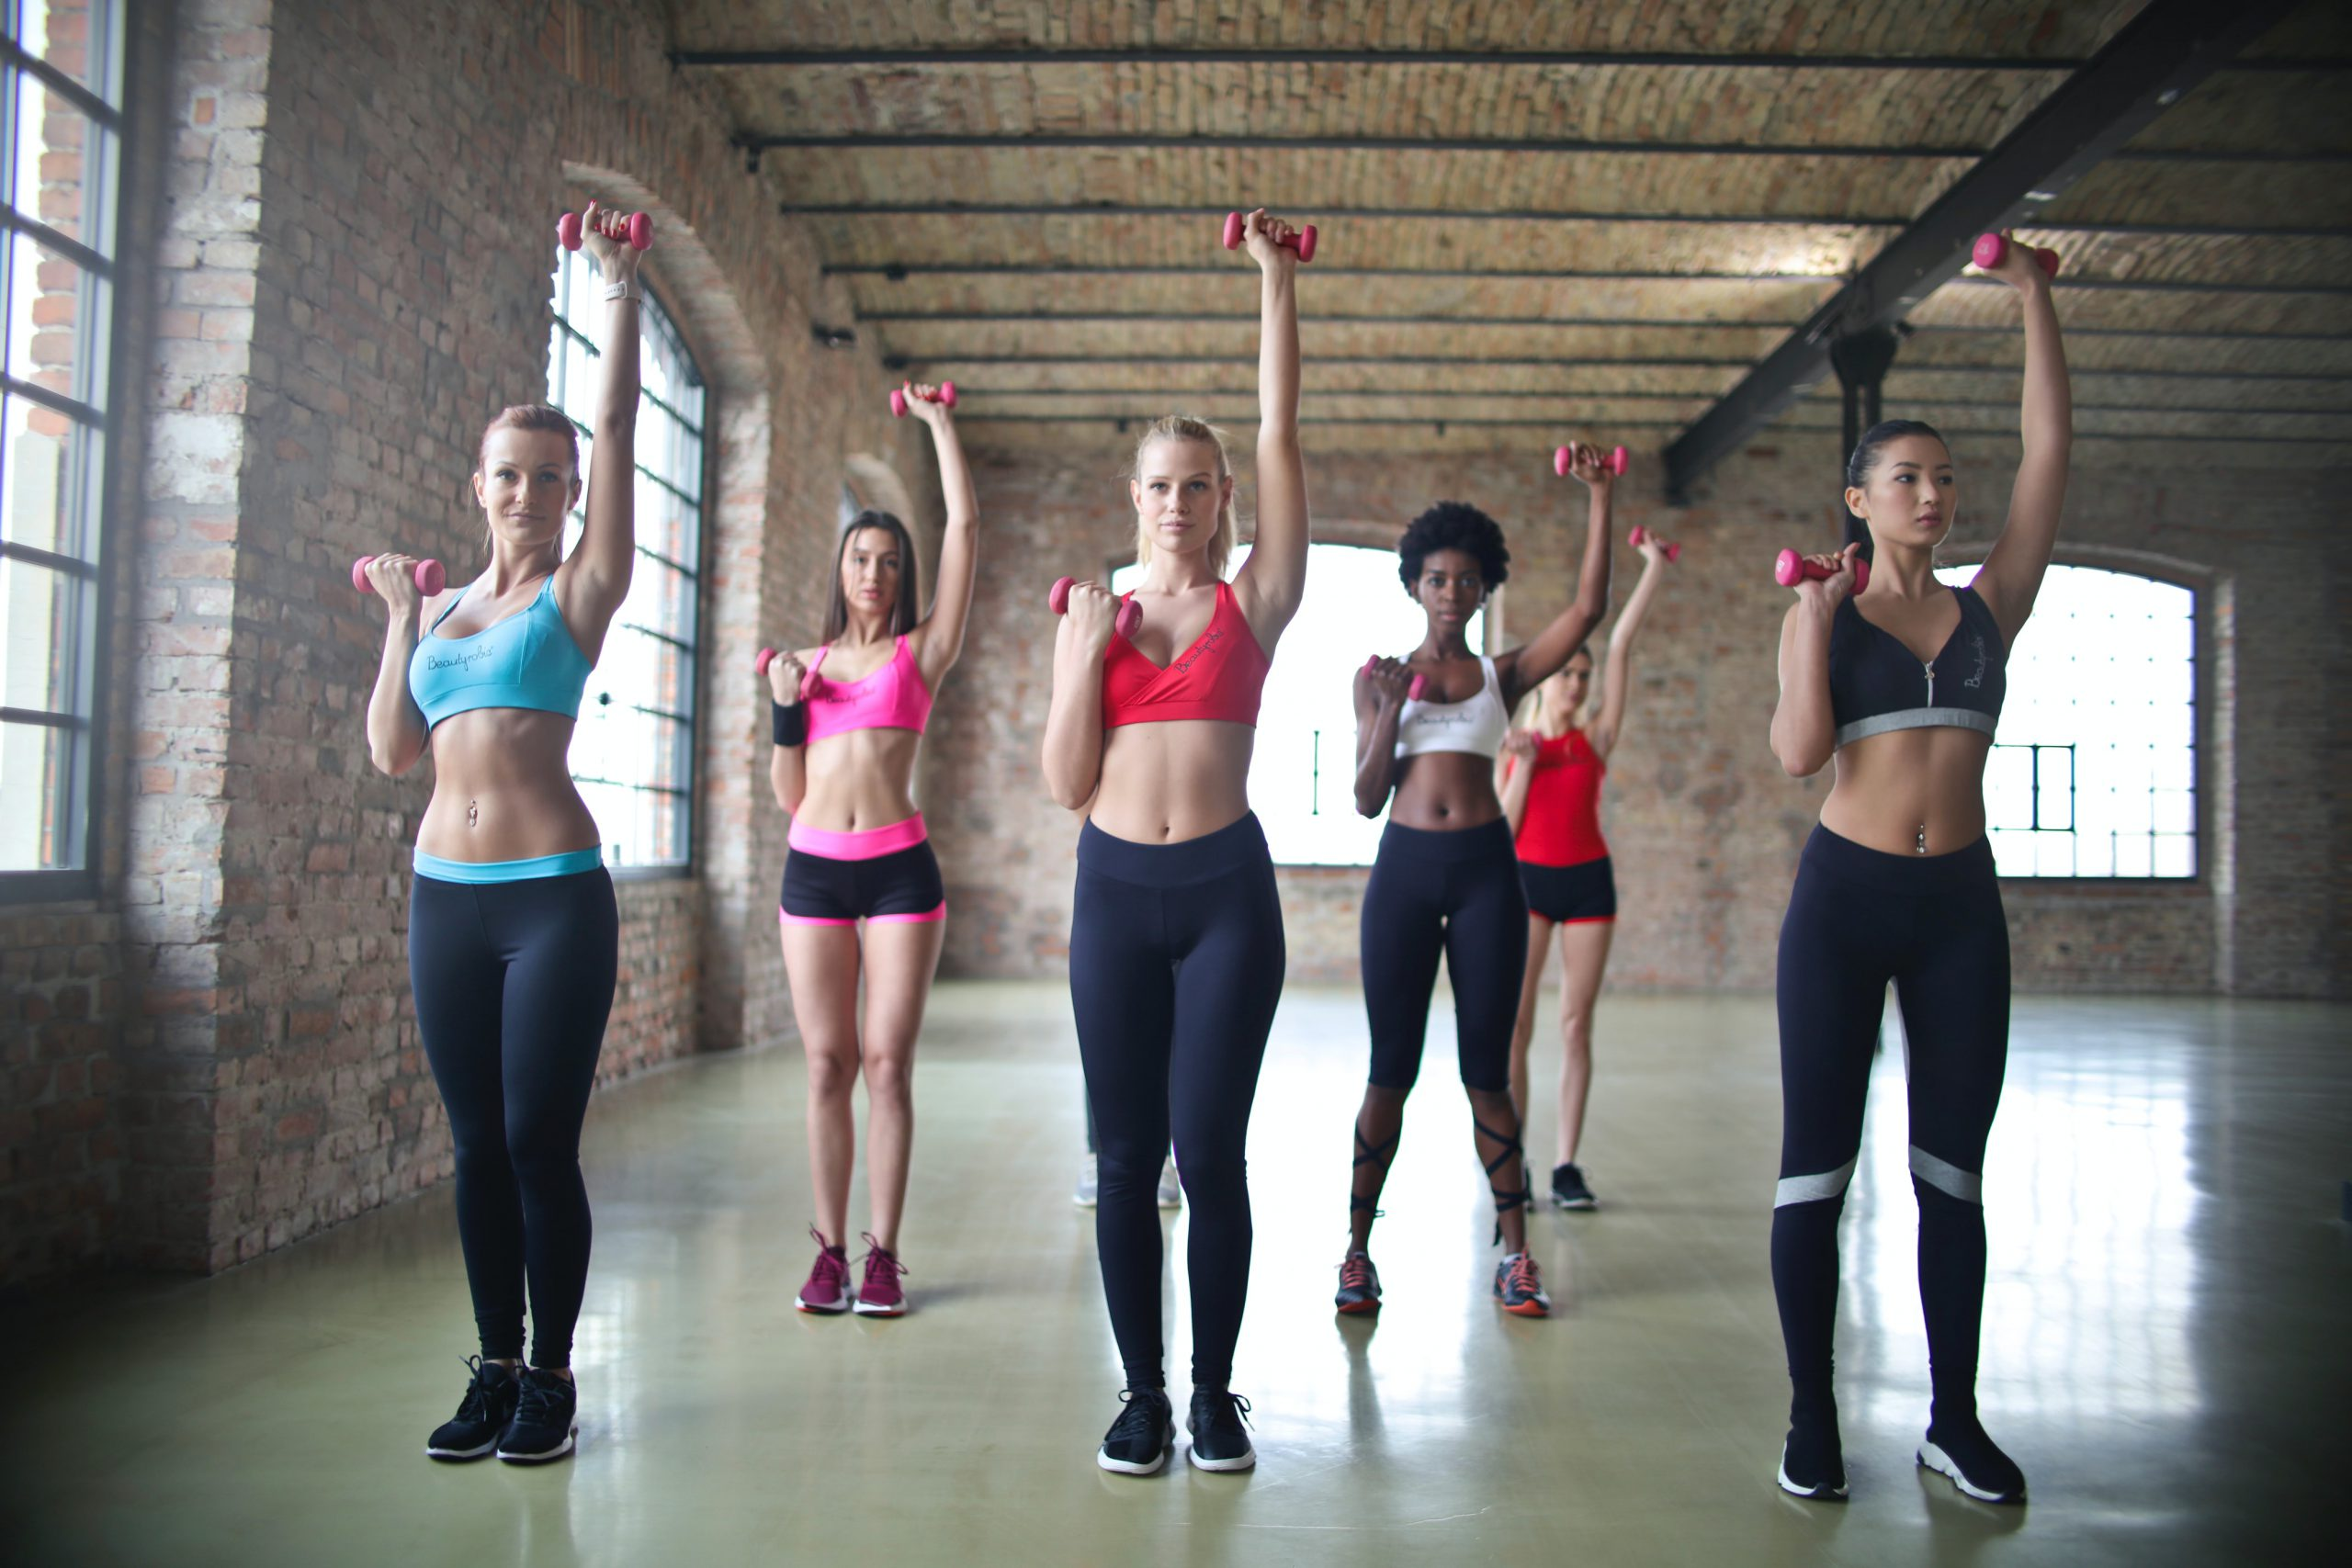 Women's Workouts image by bruce mars on www.healthynexercise.com